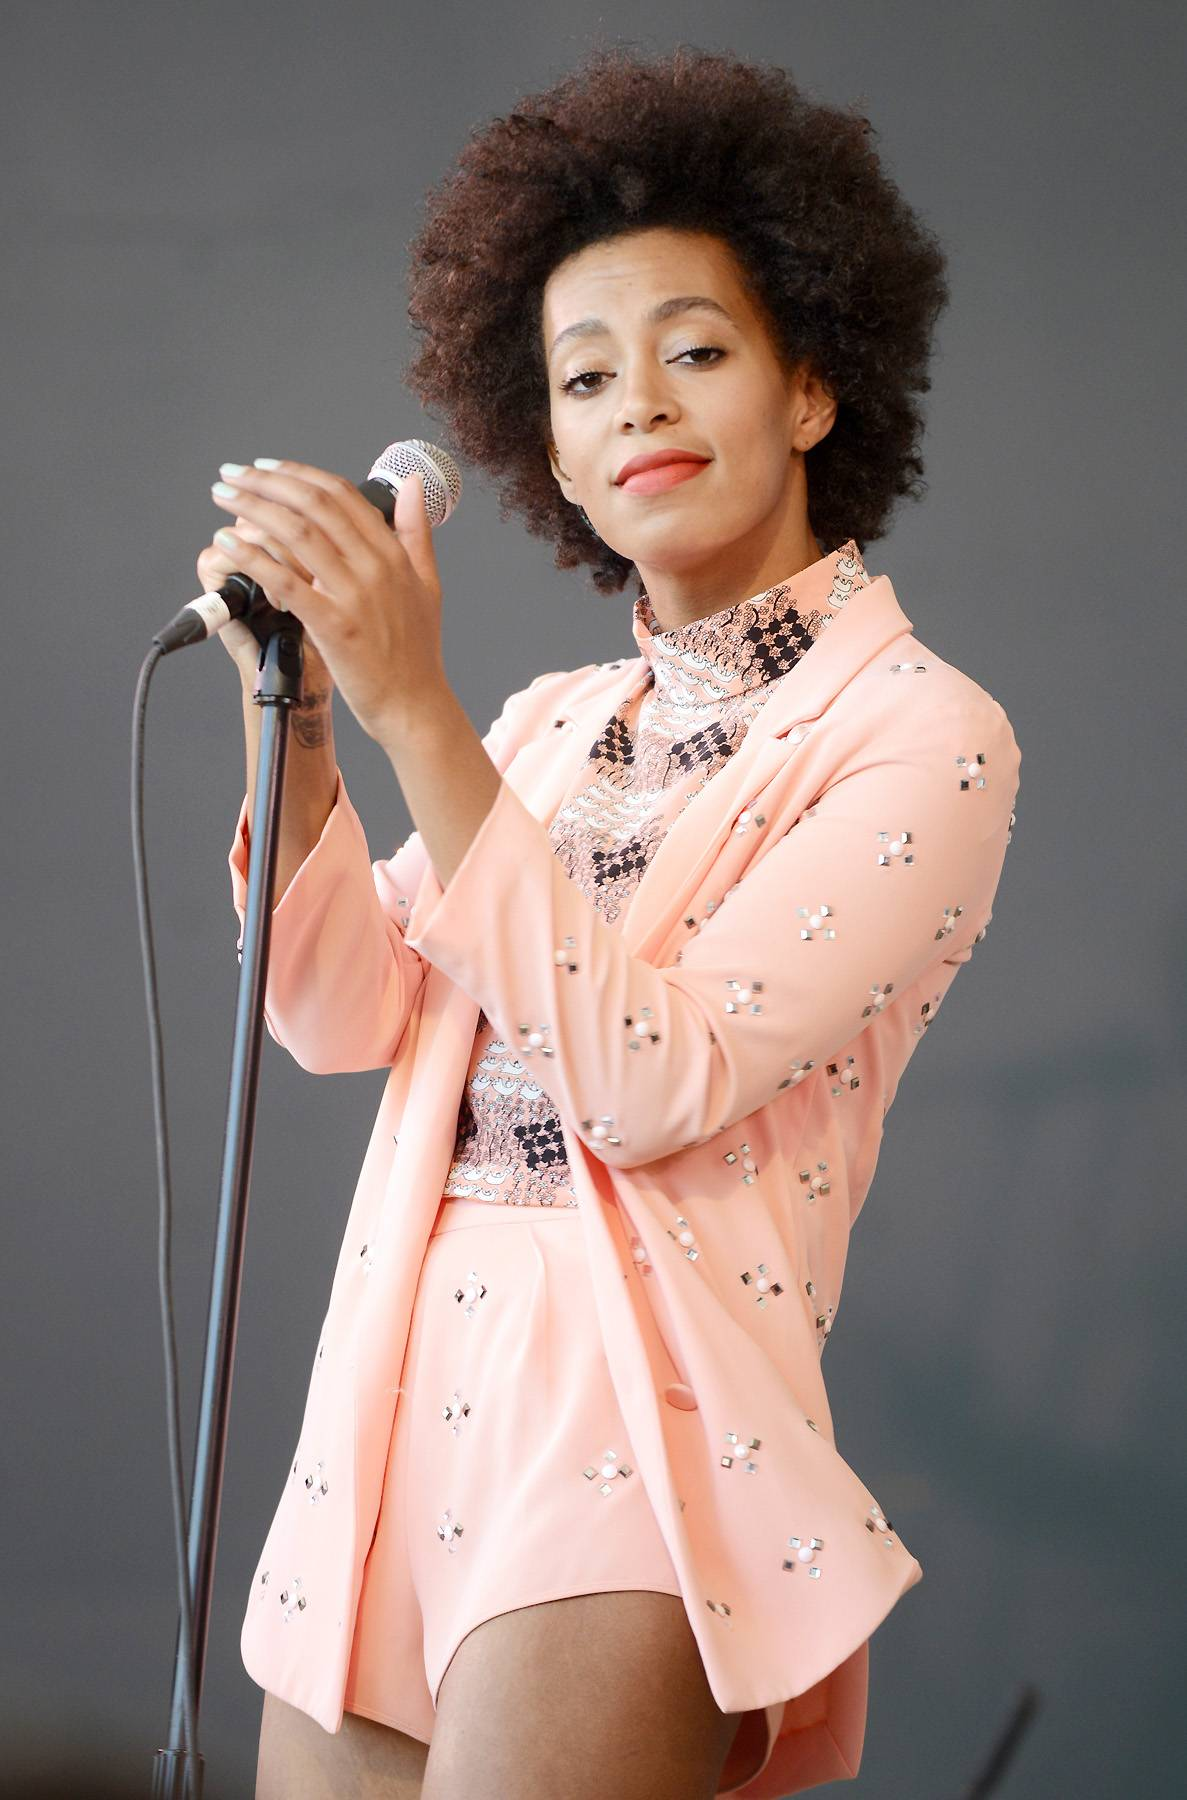 Be TRUE - Last fall Solange released her EP True. Clearly inspired by sounds of the 1980's the project debuted a more mature Solange whose musical evolution was just beginning. (Photo: Tim Mosenfelder/Getty Images)